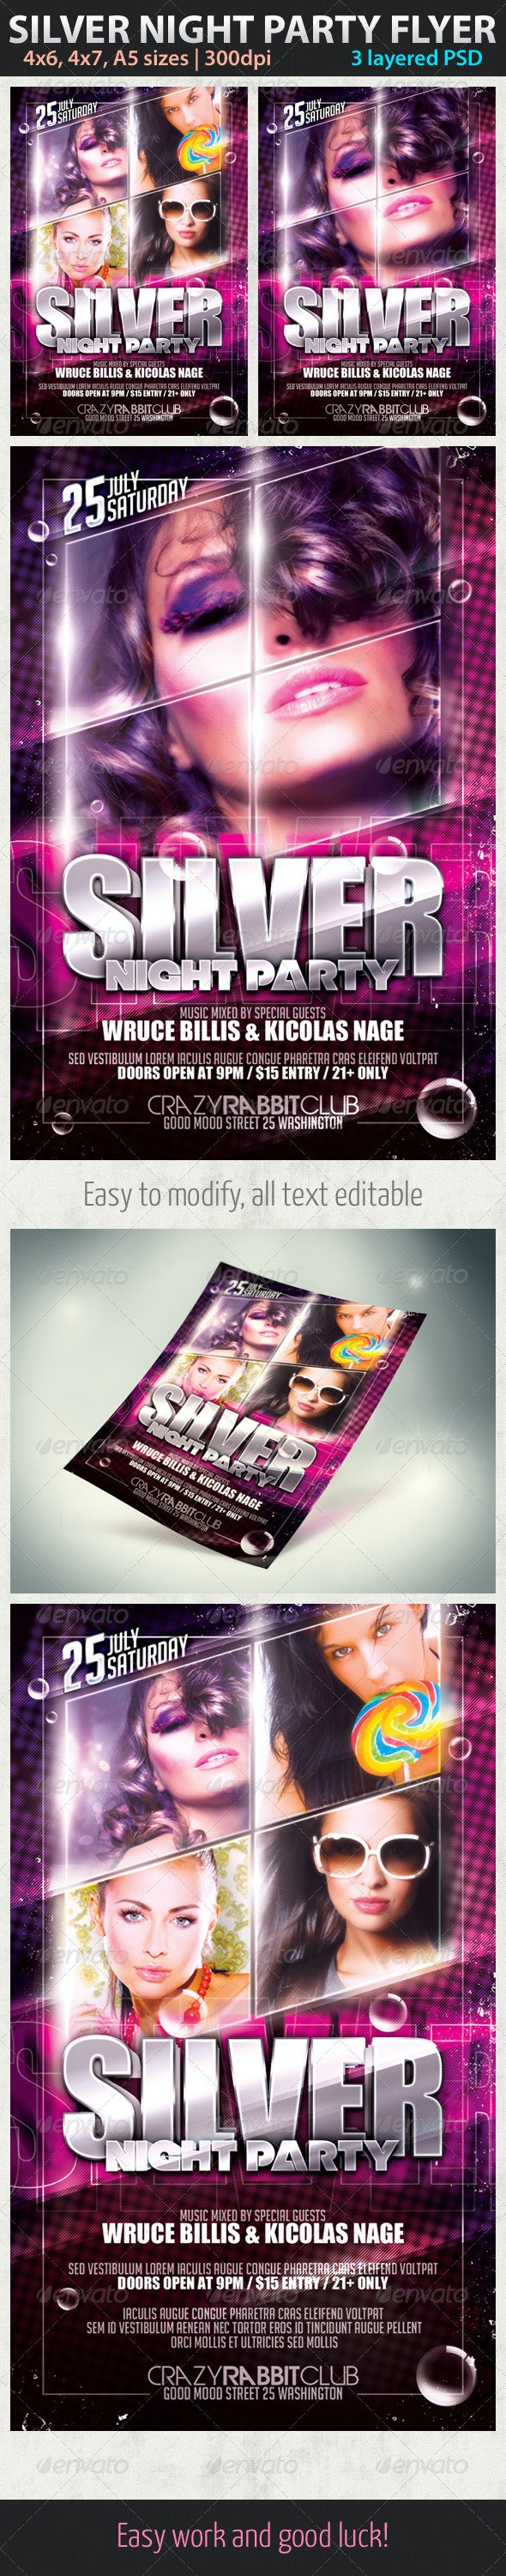 Silver Night Party Flyer - Clubs & Parties Events